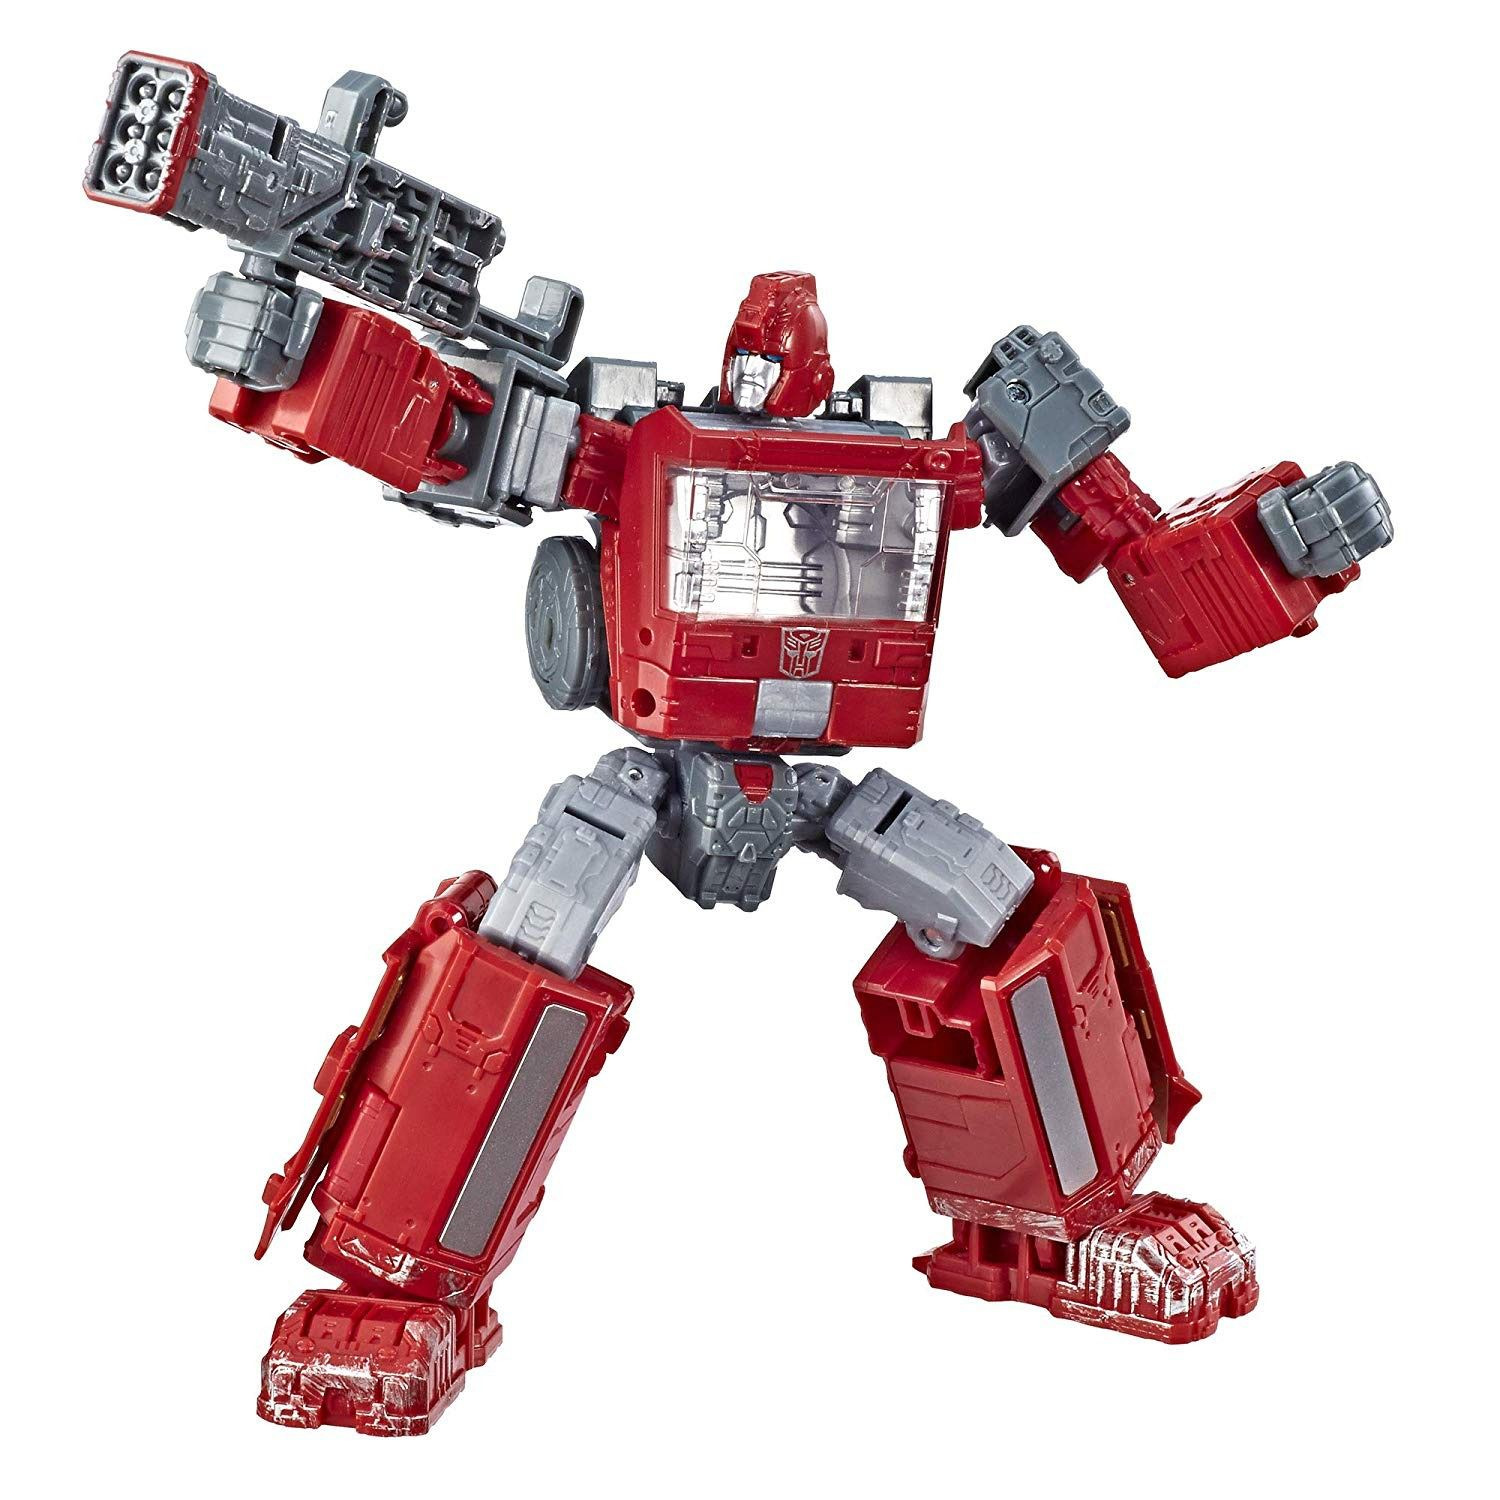 Transformers Deluxe Siege War for Cybertron Trilogy WFC-S21 Ironhide 13cm – Hasbro